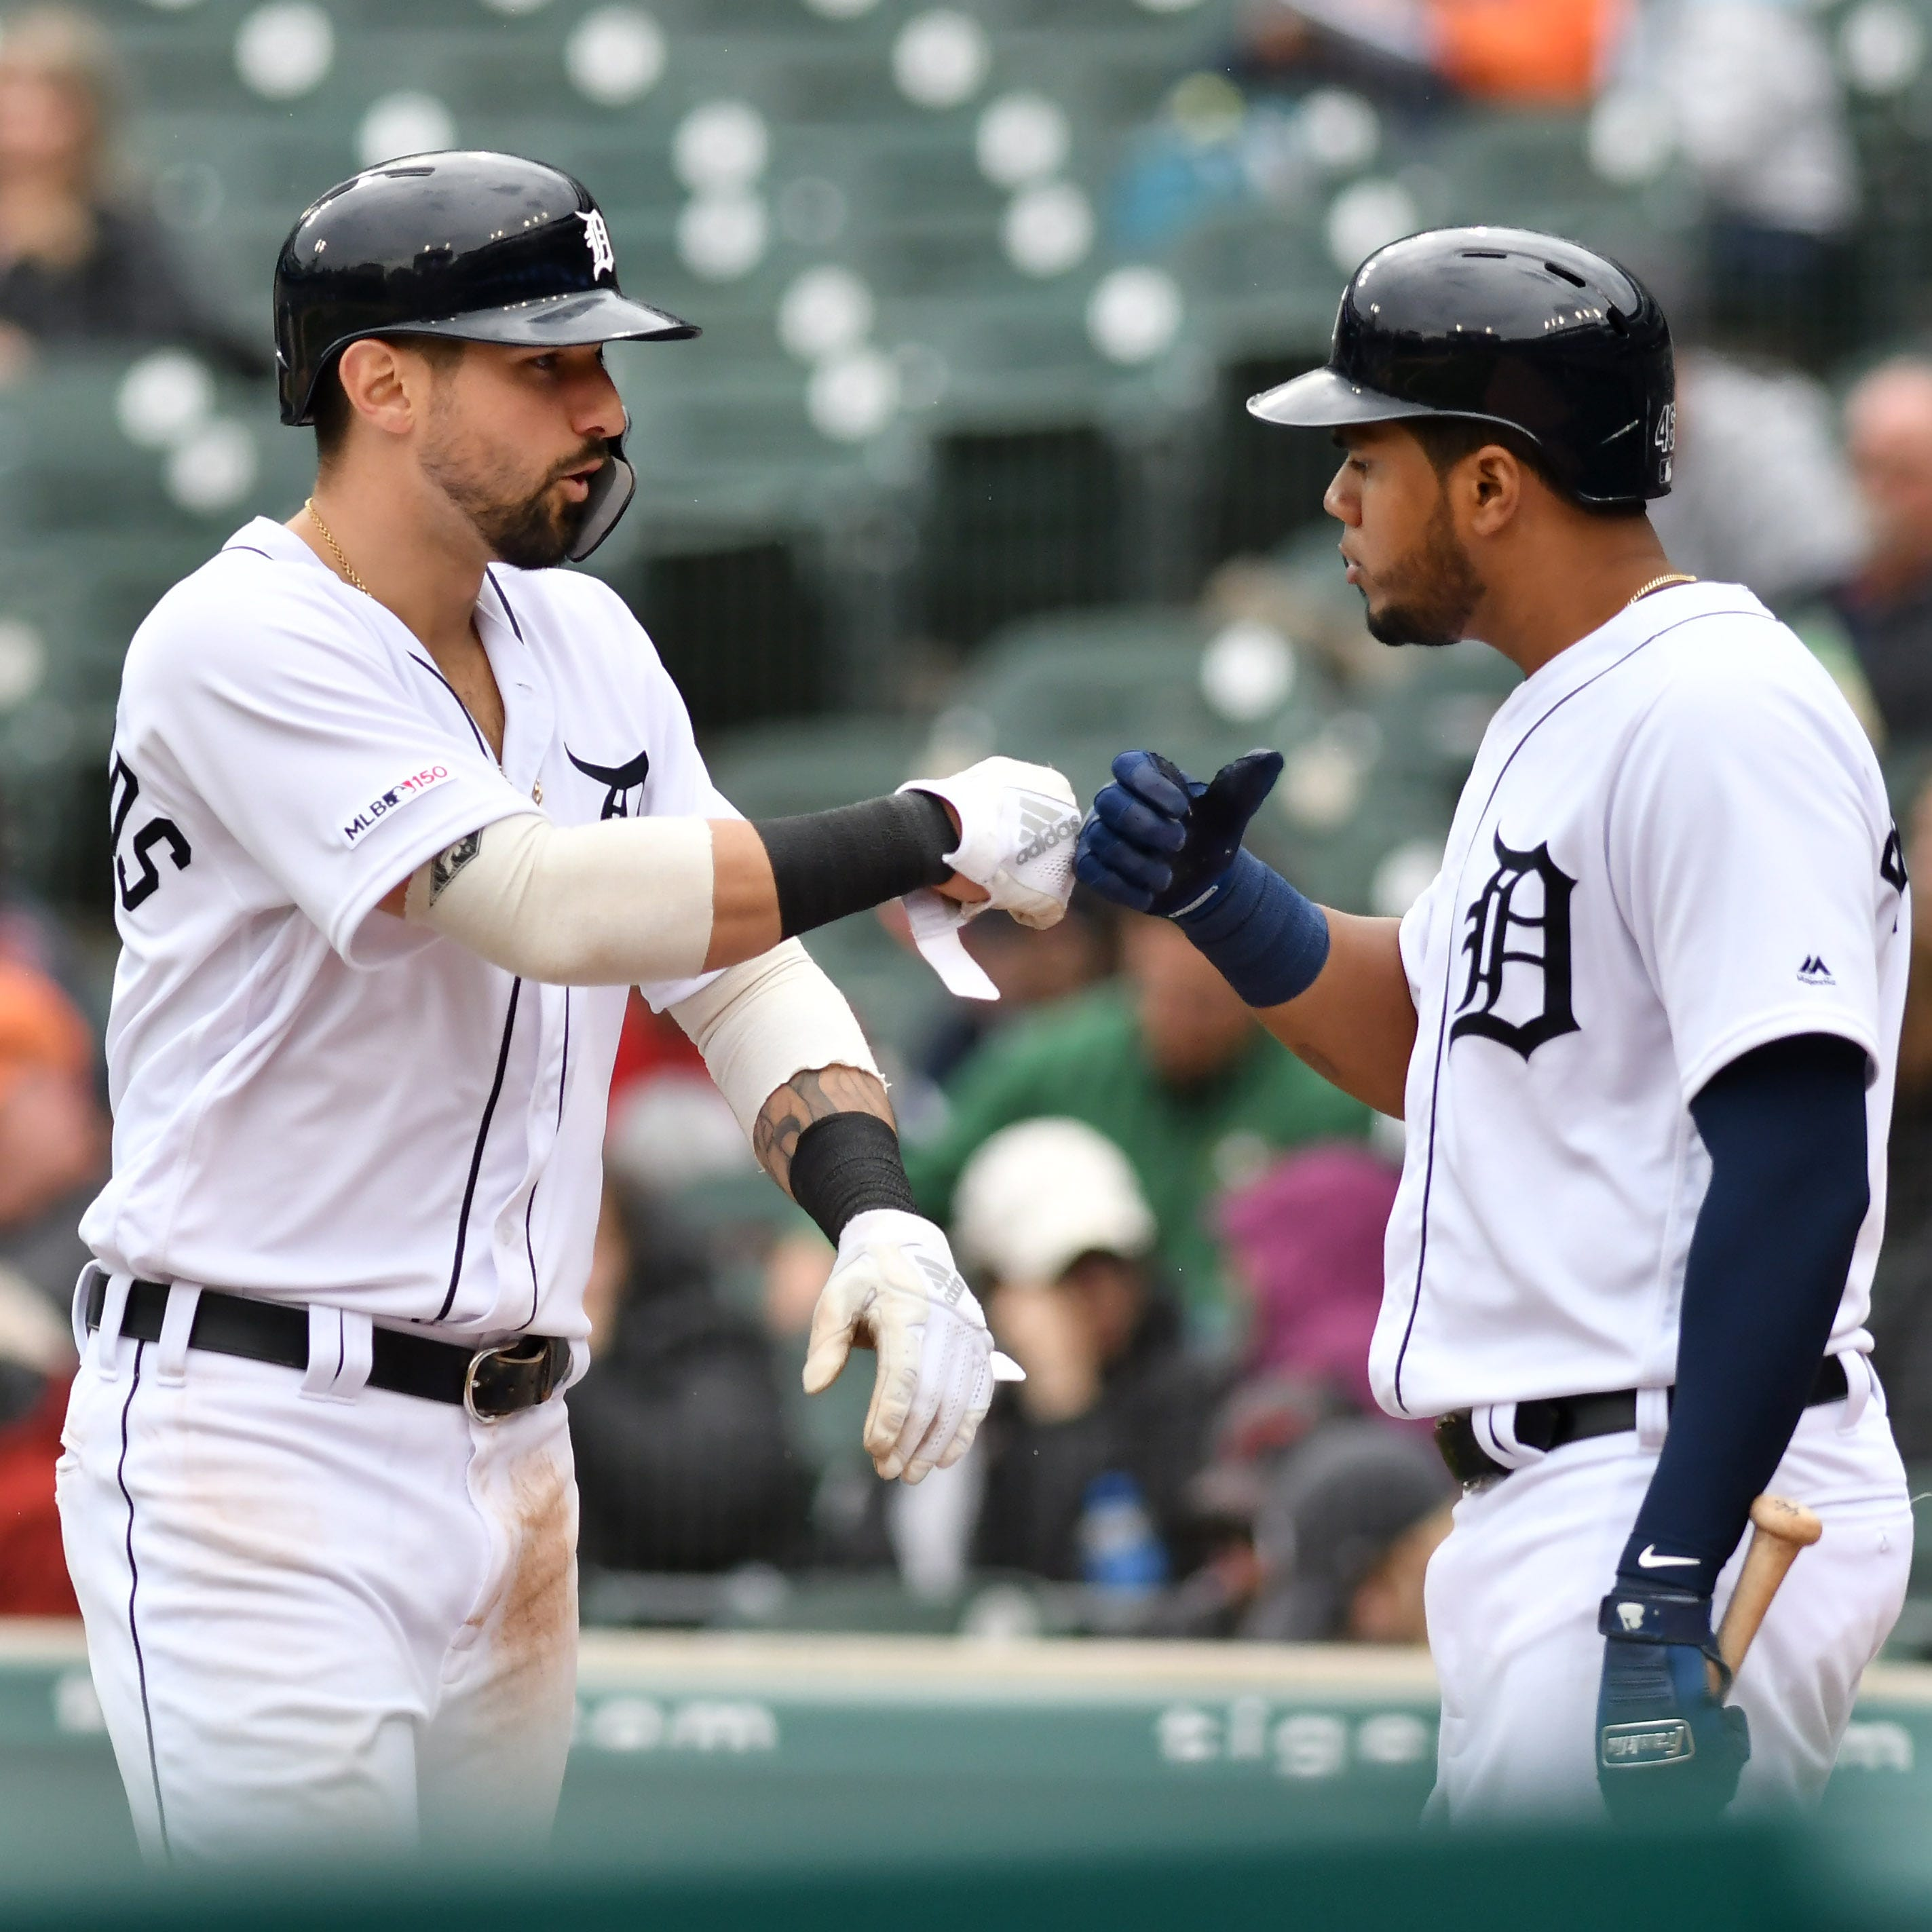 'We needed this': Gardenhire's message helps Tigers vanquish five-game skid